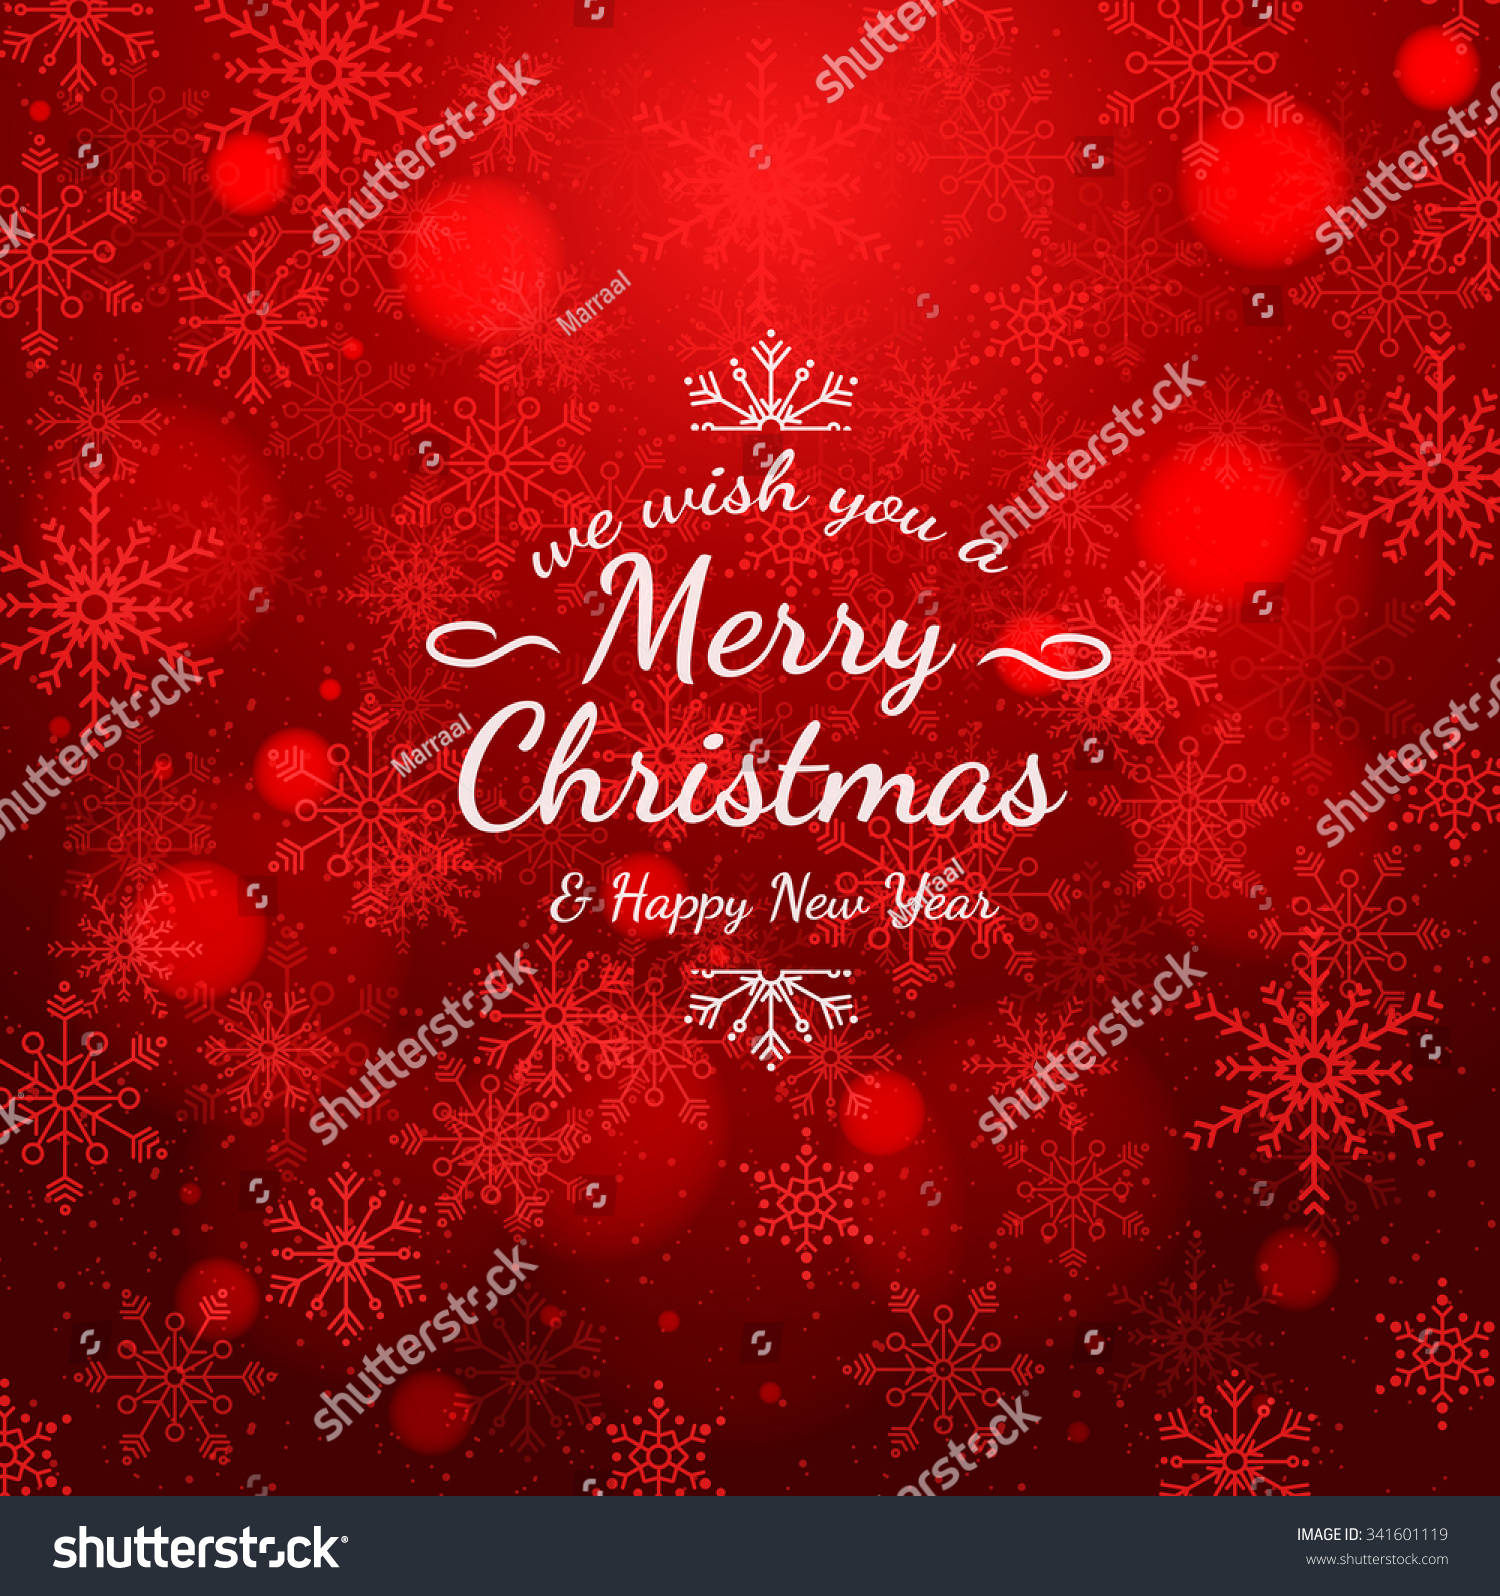 Sample Christmas Cards With Colorful Text. The Texture Of The Snowflakes.  Bright Winter Background  Christmas Cards Sample